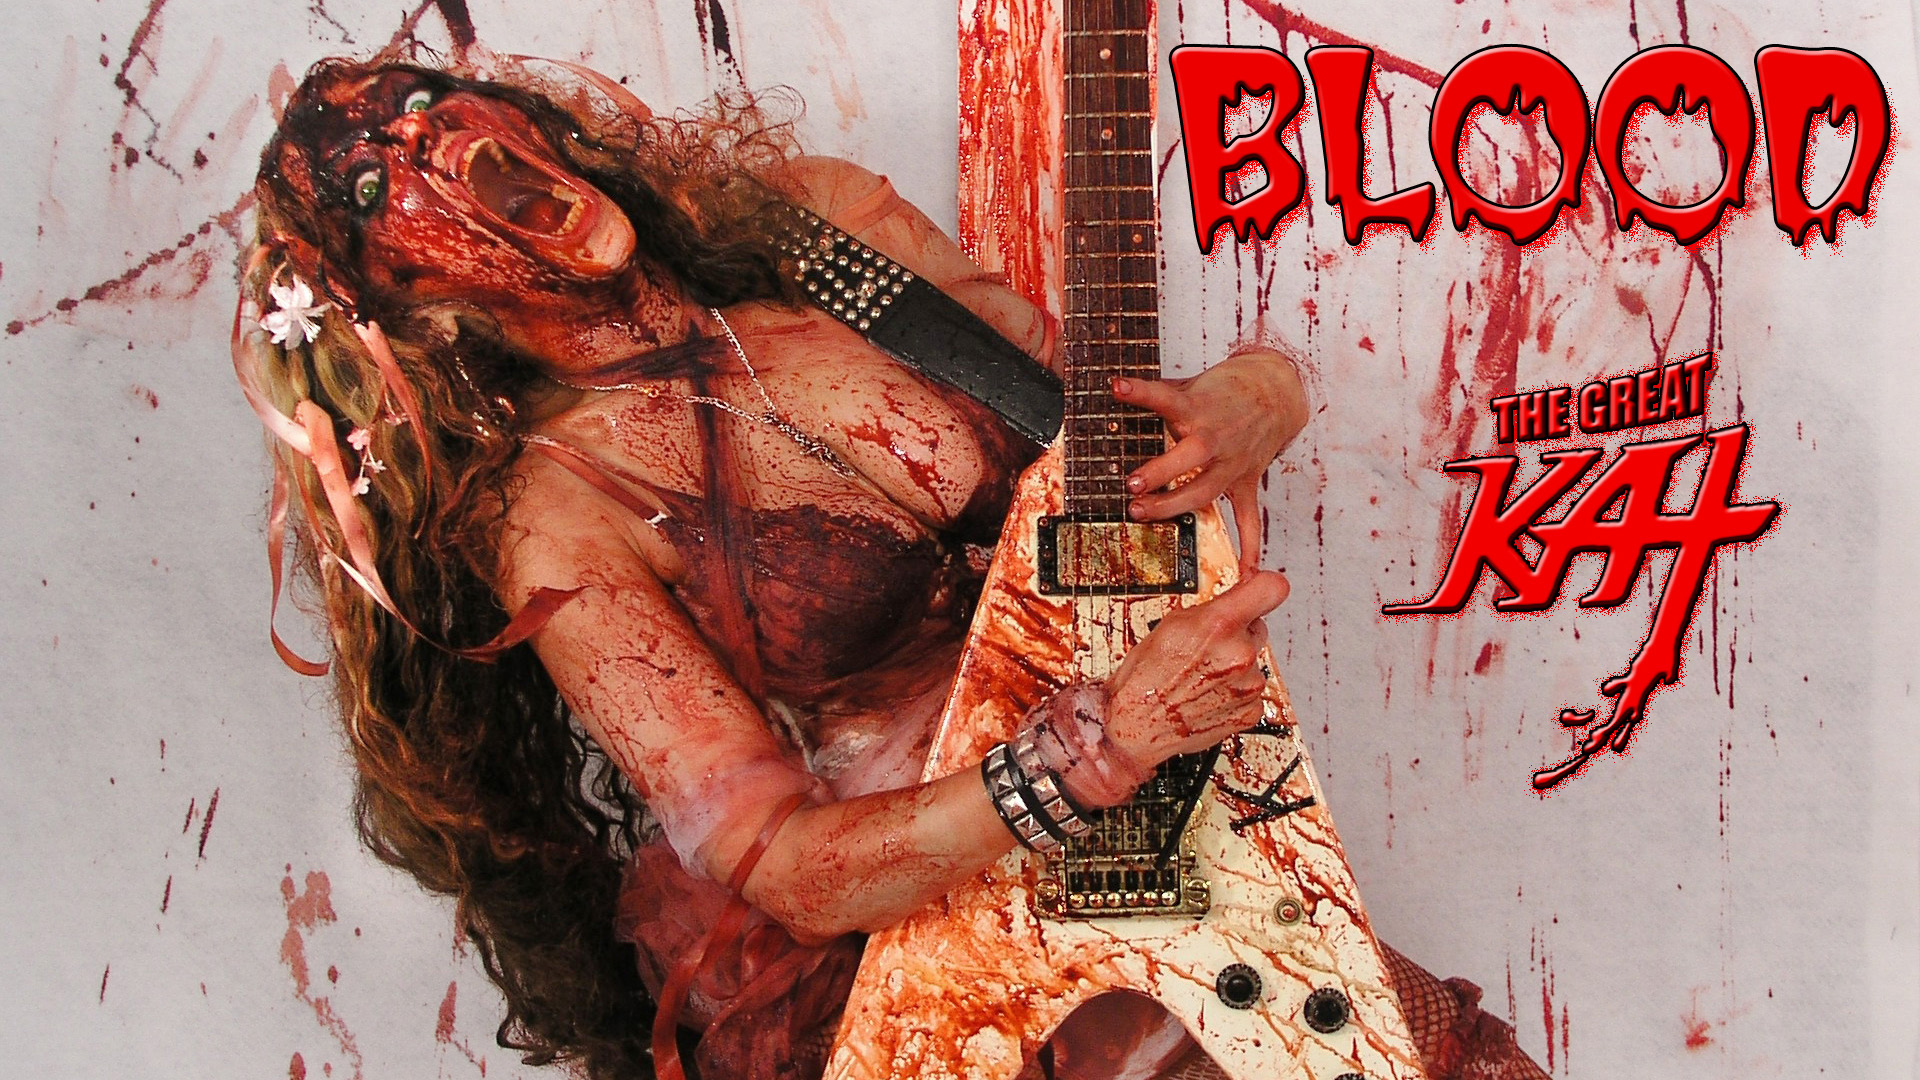 The Great Kat's BLOOD! BLOODY HORROR SHOW! Watch SHOCK ROCK Guitar Goddess The Great Kat's Insane Horror Show, featuring the hot female virtuoso's blood-dripping guitar shredding, heavy metal insanity & blood-curdling vocals. This is a total freak show with The Great Kat's finger-bleeding guitar virtuosity and outrageous stage persona in total bloody glory! The bloodthirsty immortal guitar hero, The Great Kat gargles blood while spitting out the insanely fast guitar riffs! Let the BLOODFEST begin!